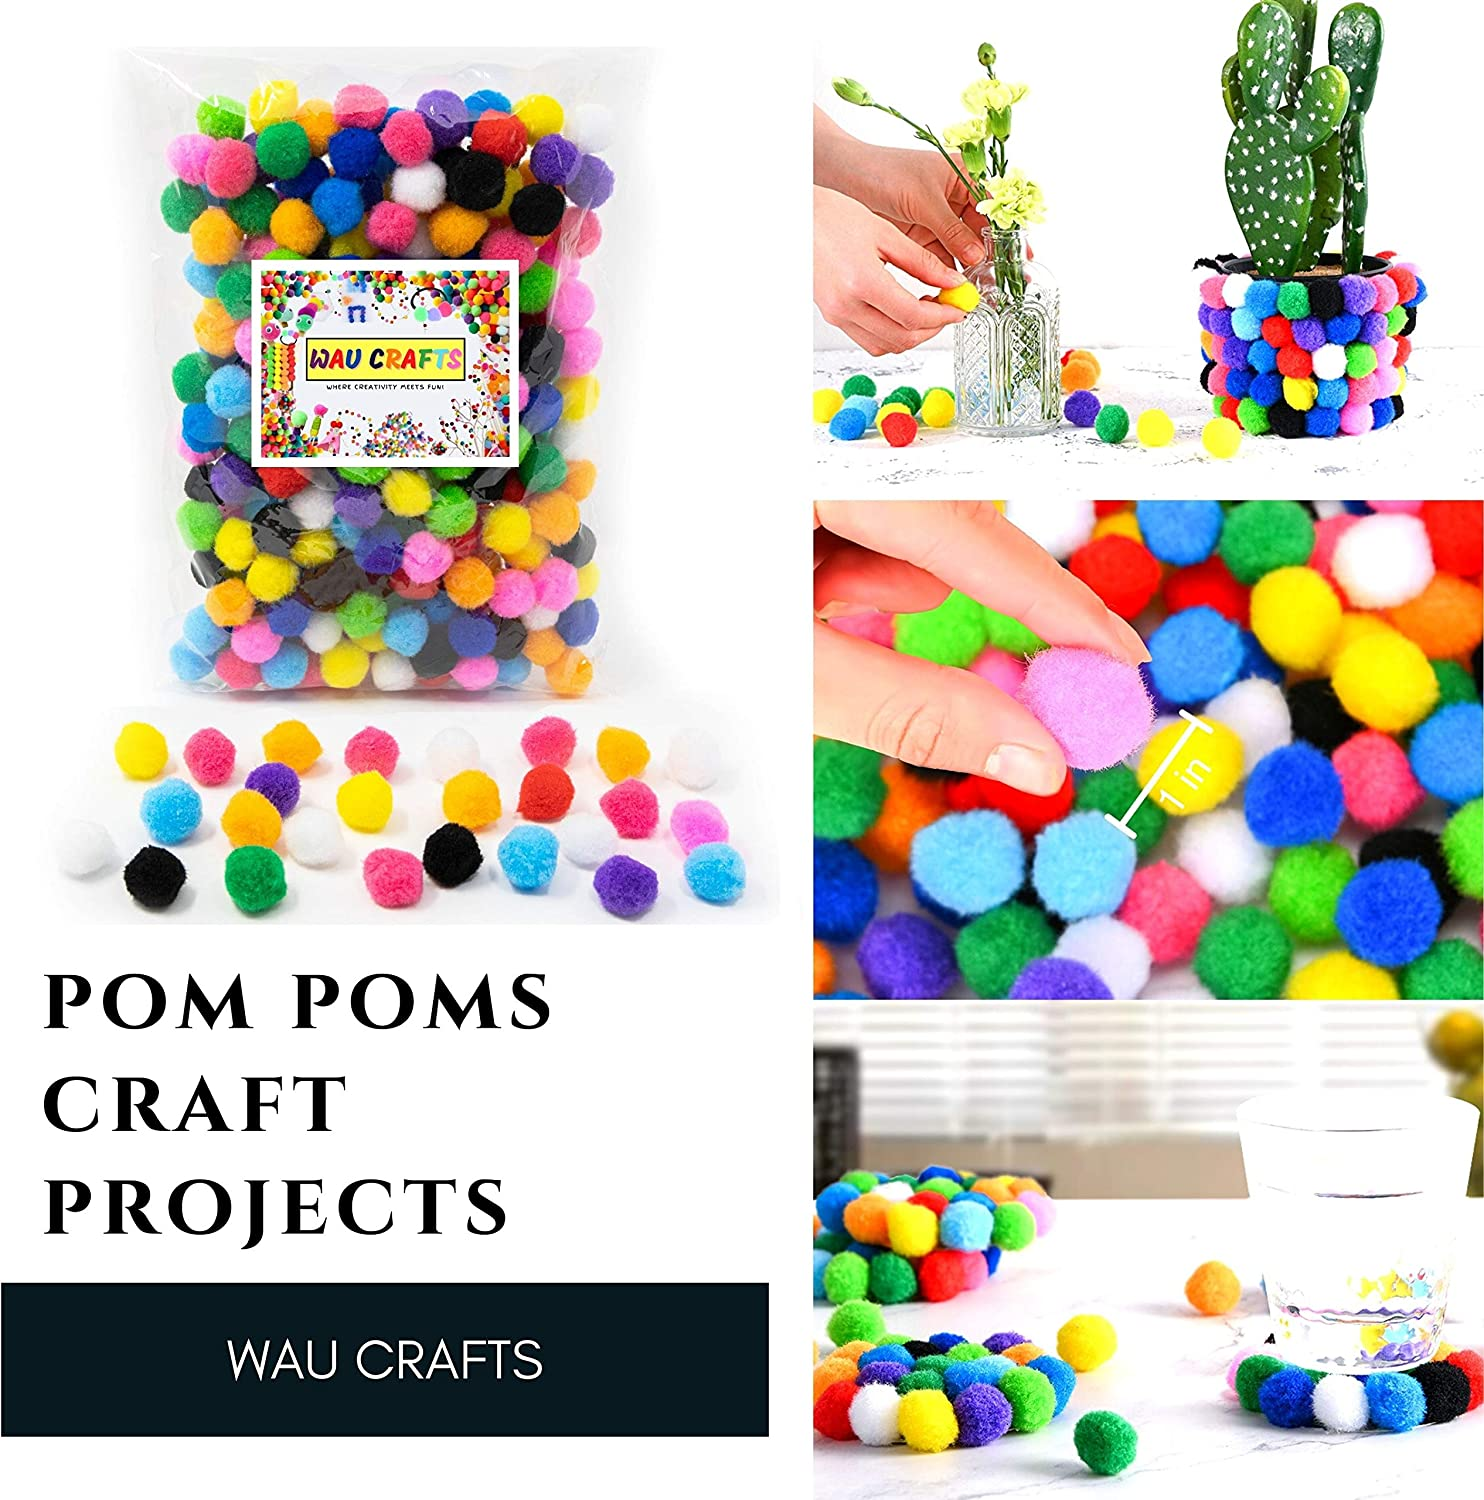 WAU Crafts Pom Poms 1 inch 300 Pieces Assorted Multicolor Pompoms for Crafts Arts /& DIY Projects